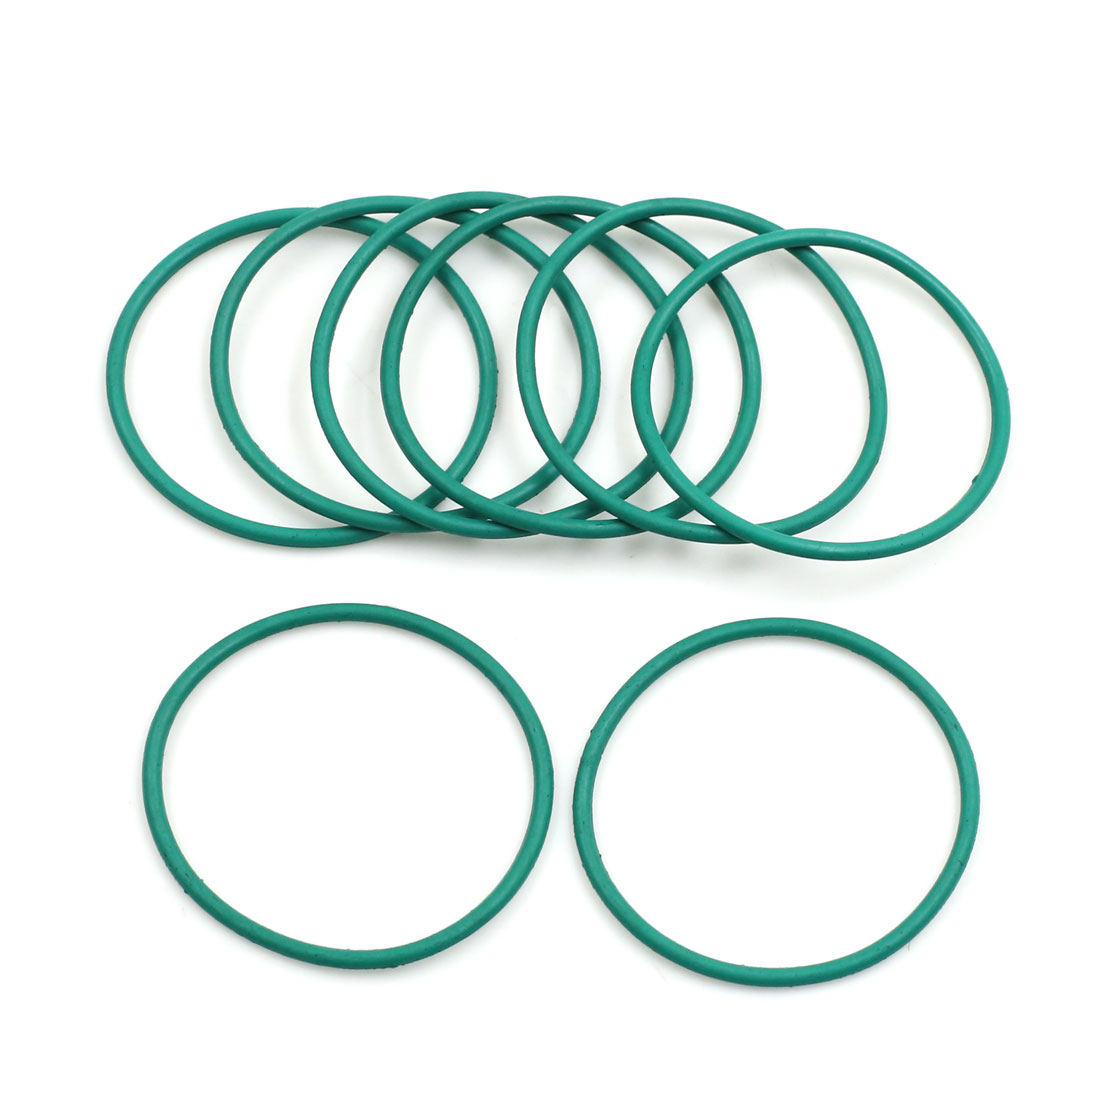 8pcs Green Universal FKM O-Ring Sealing Gasket Washer for Car 42mm x 2mm